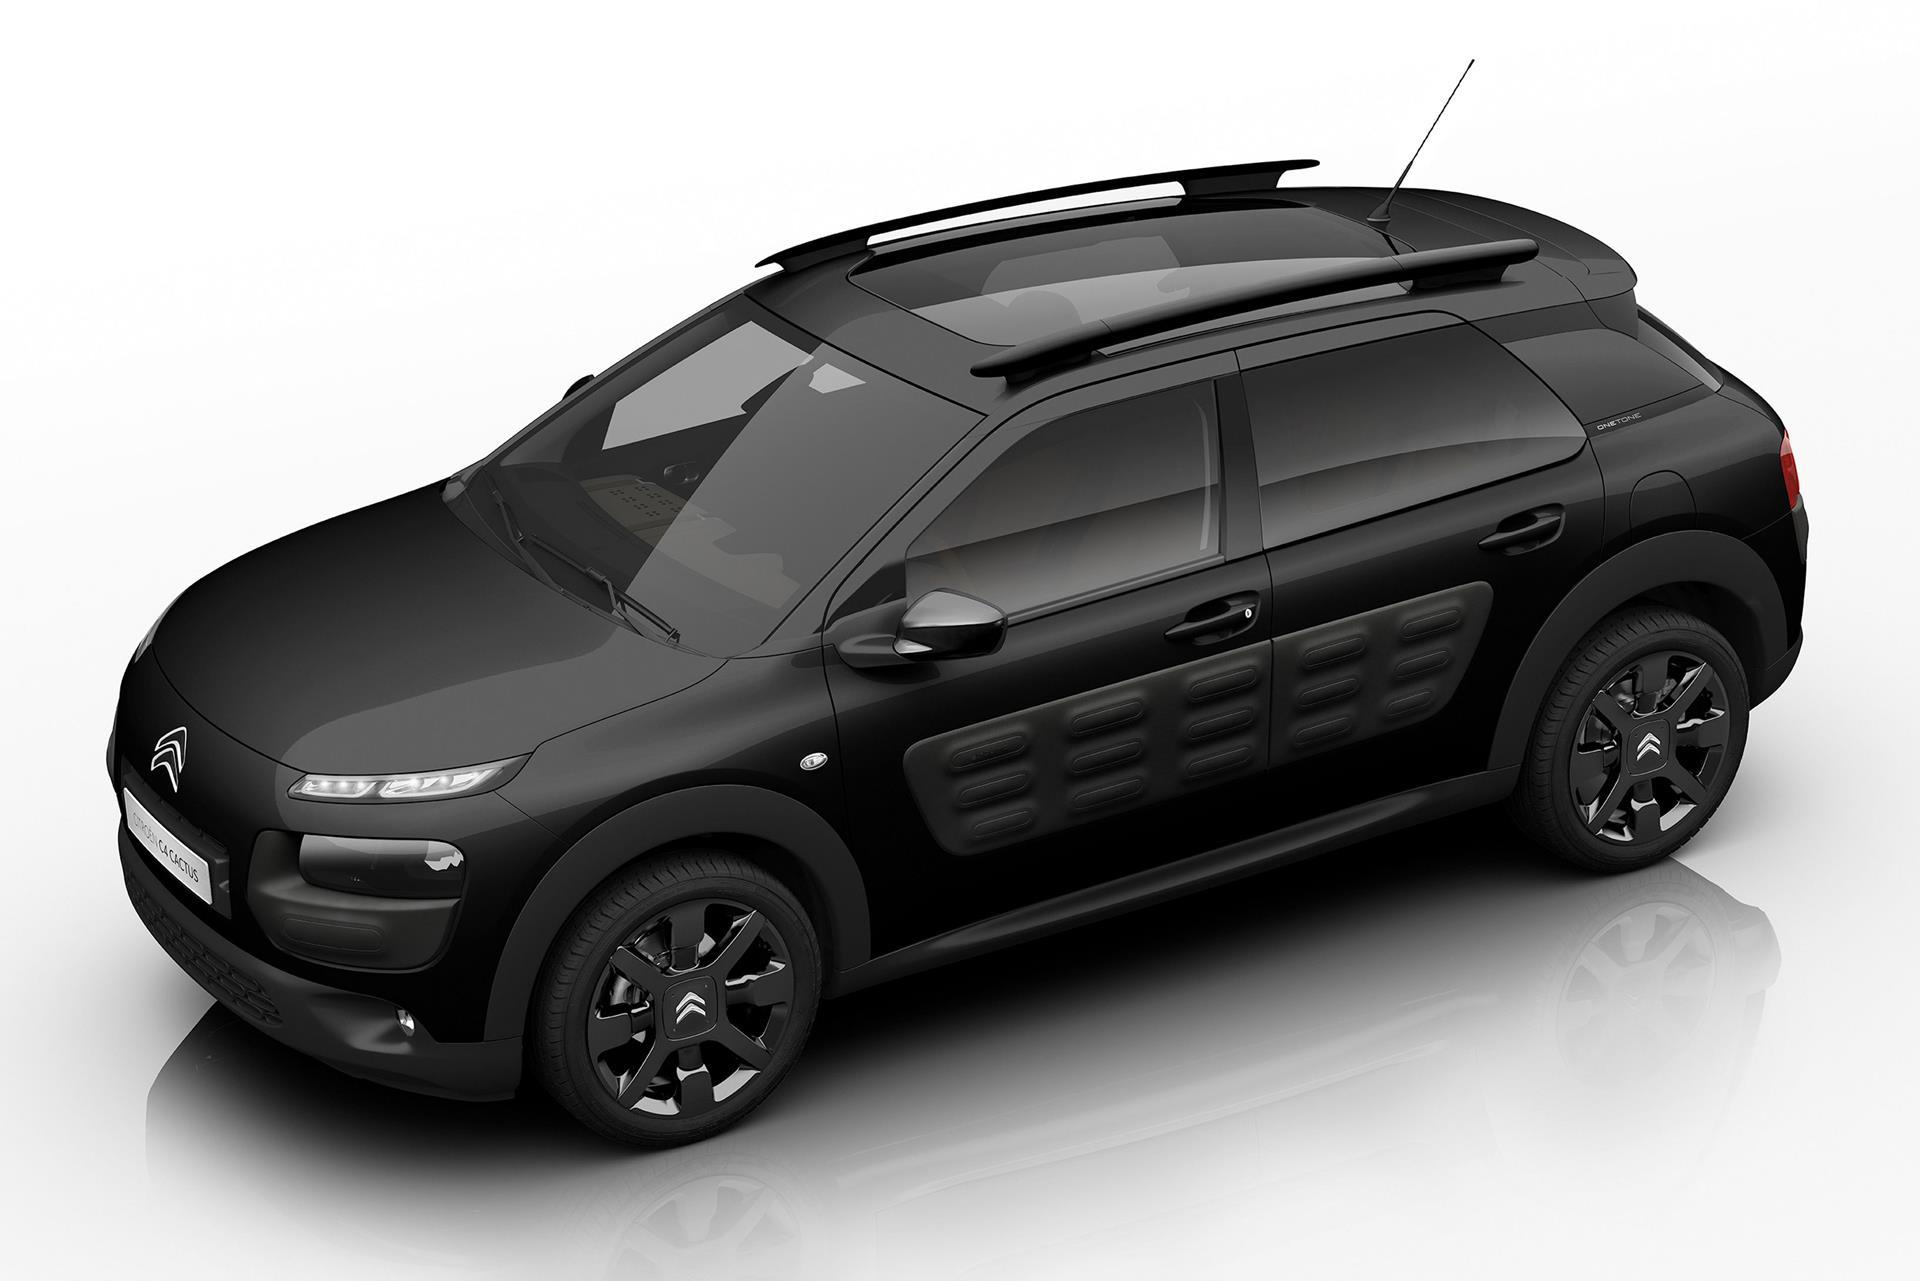 Lamborghini 2017 Price >> 2017 Citroen C4 Cactus OneTone News and Information - conceptcarz.com